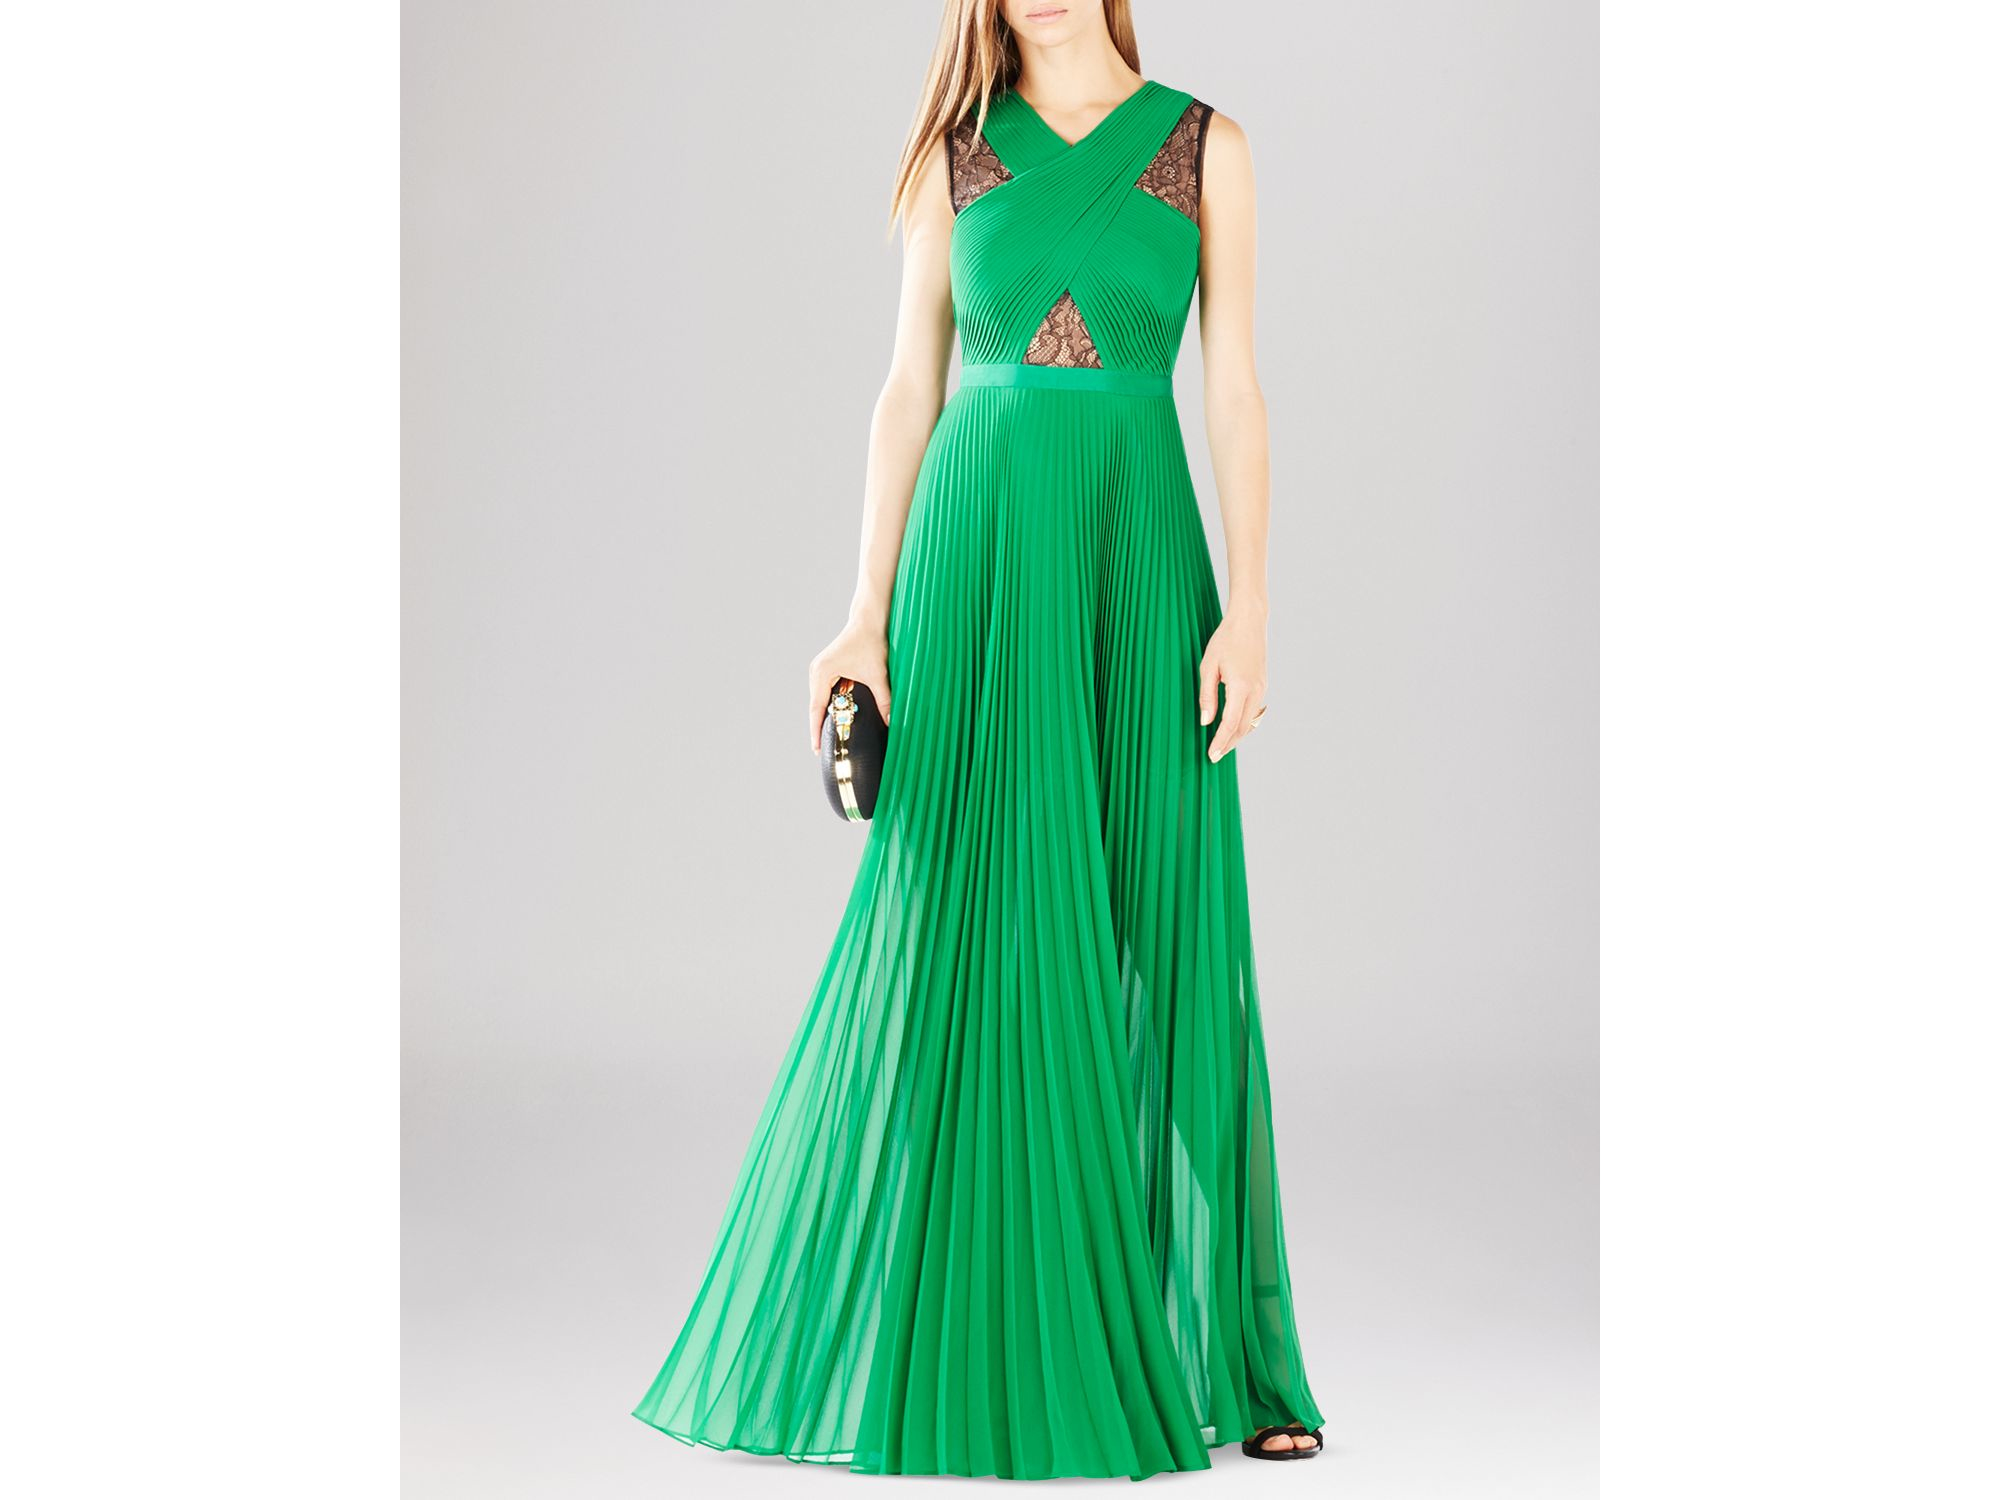 Lyst - Bcbgmaxazria Caia Lace Inset Gown in Green